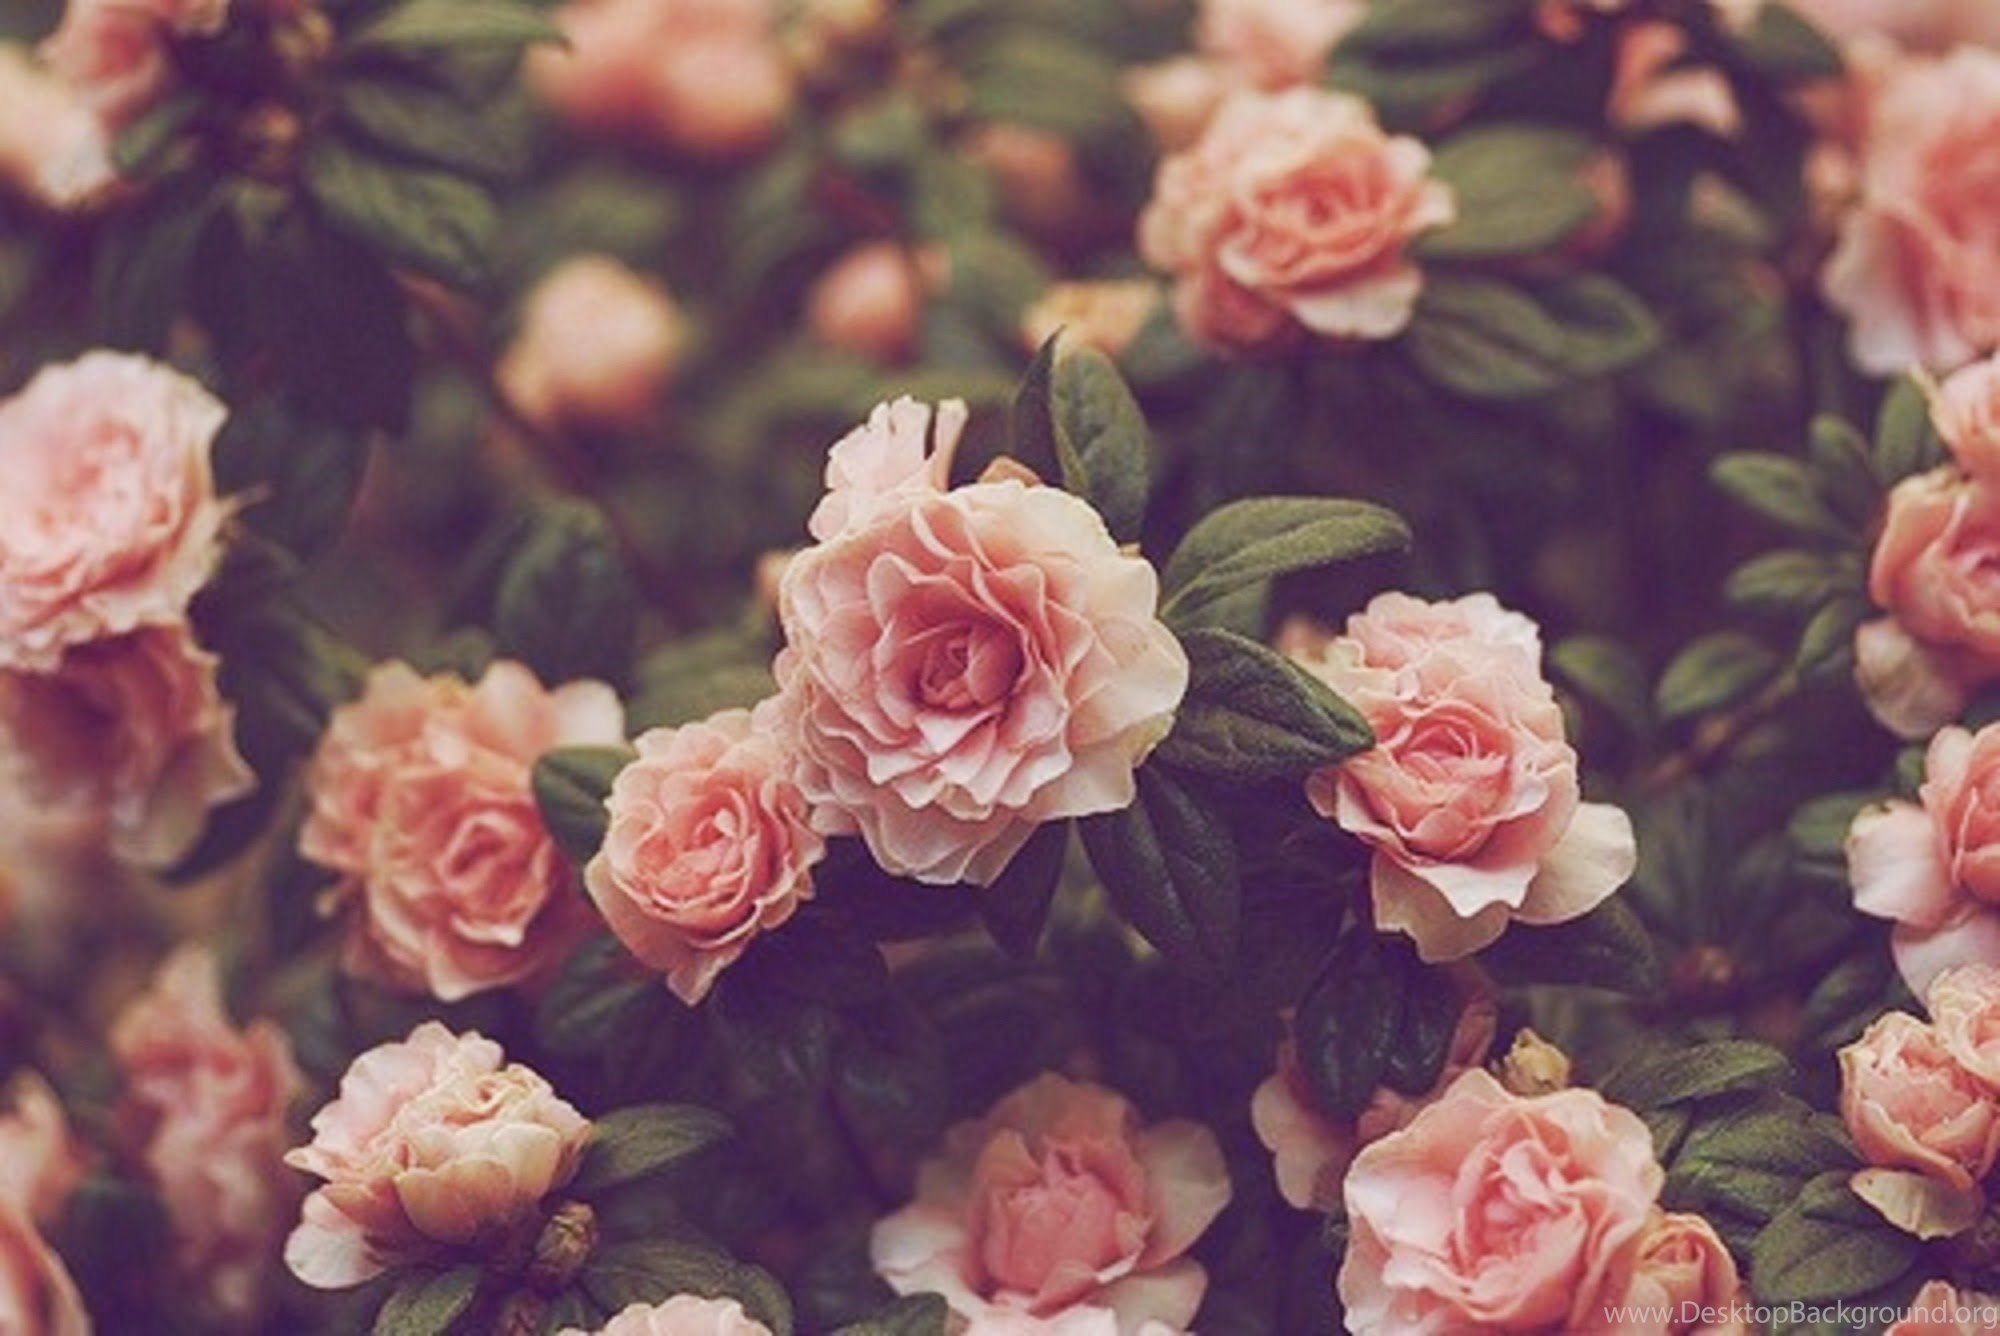 Flowers Wallpapers Tumblr With Quotes Wallpapers Desktop Background